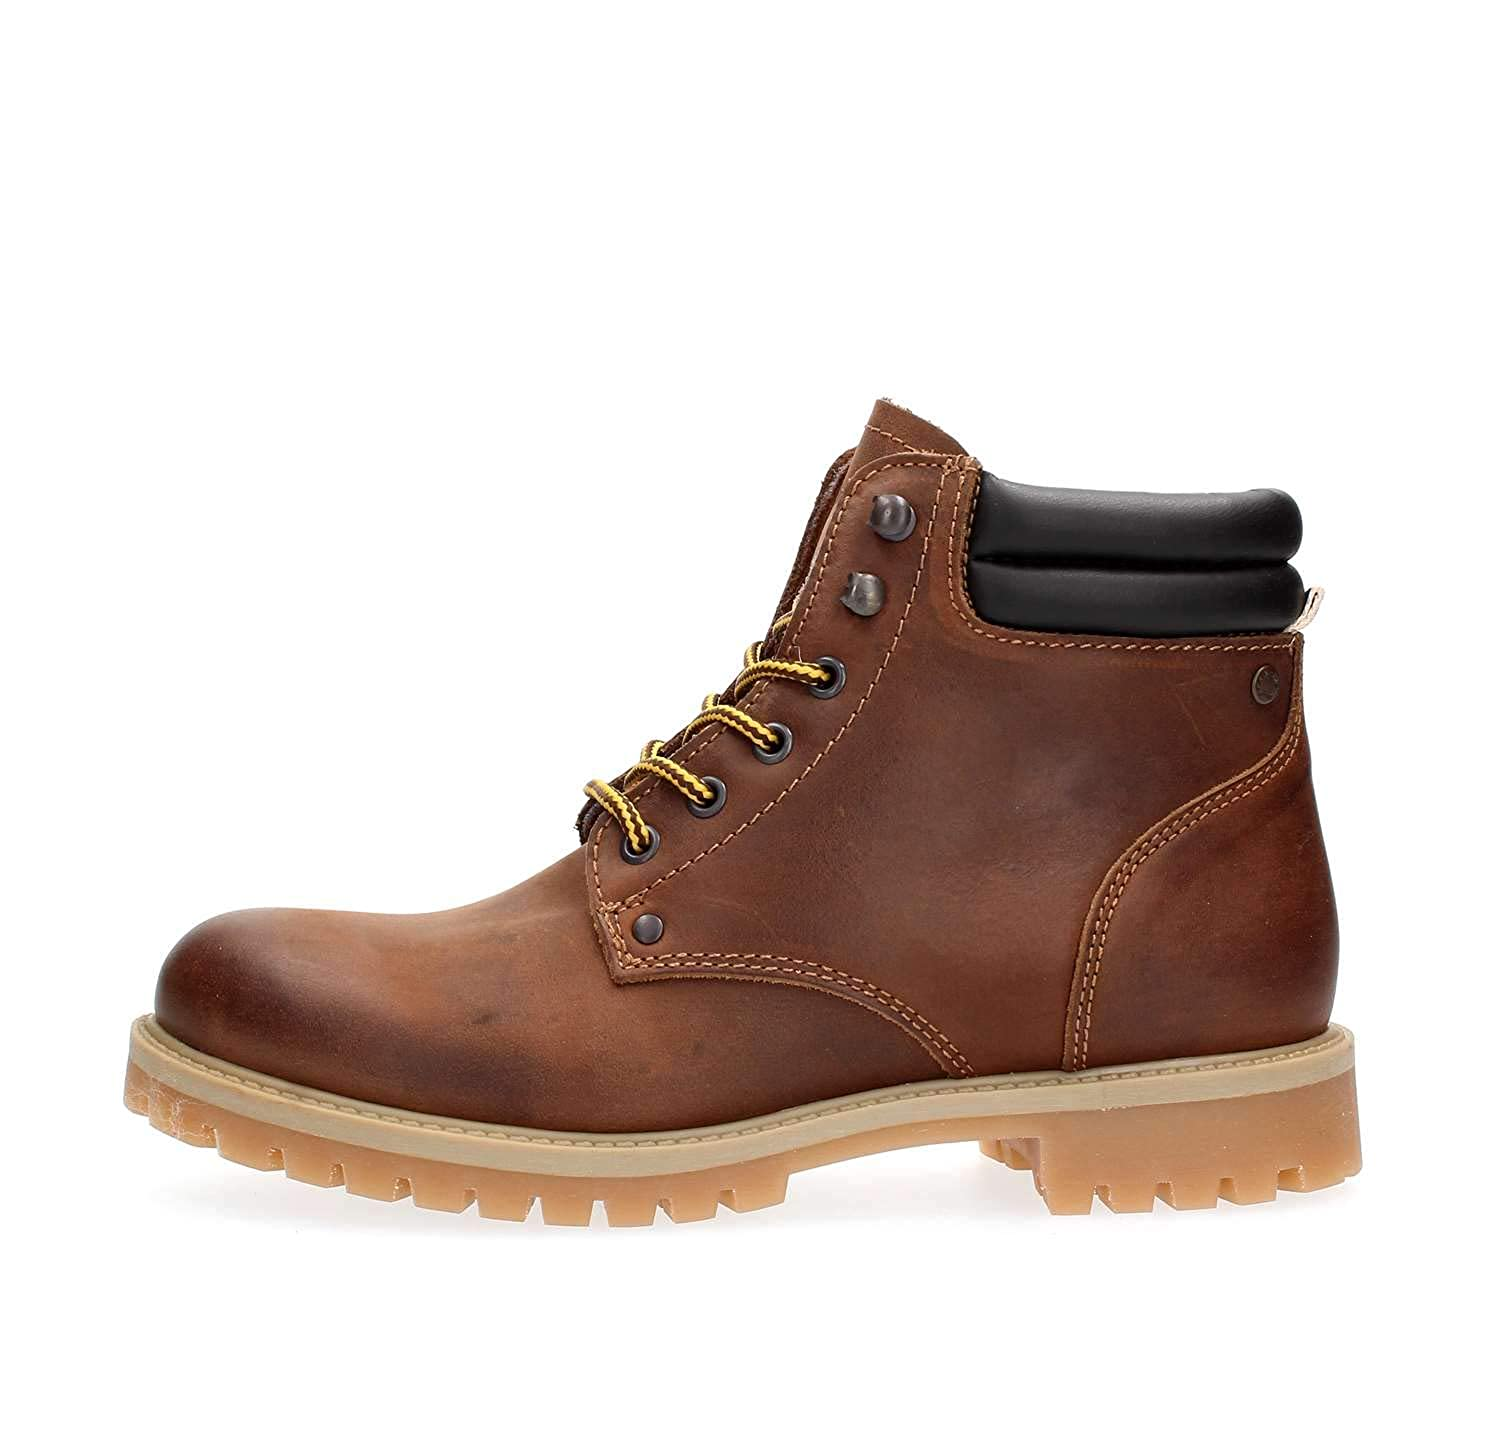 Jack & Jones Bottes Stoke Marron Homme